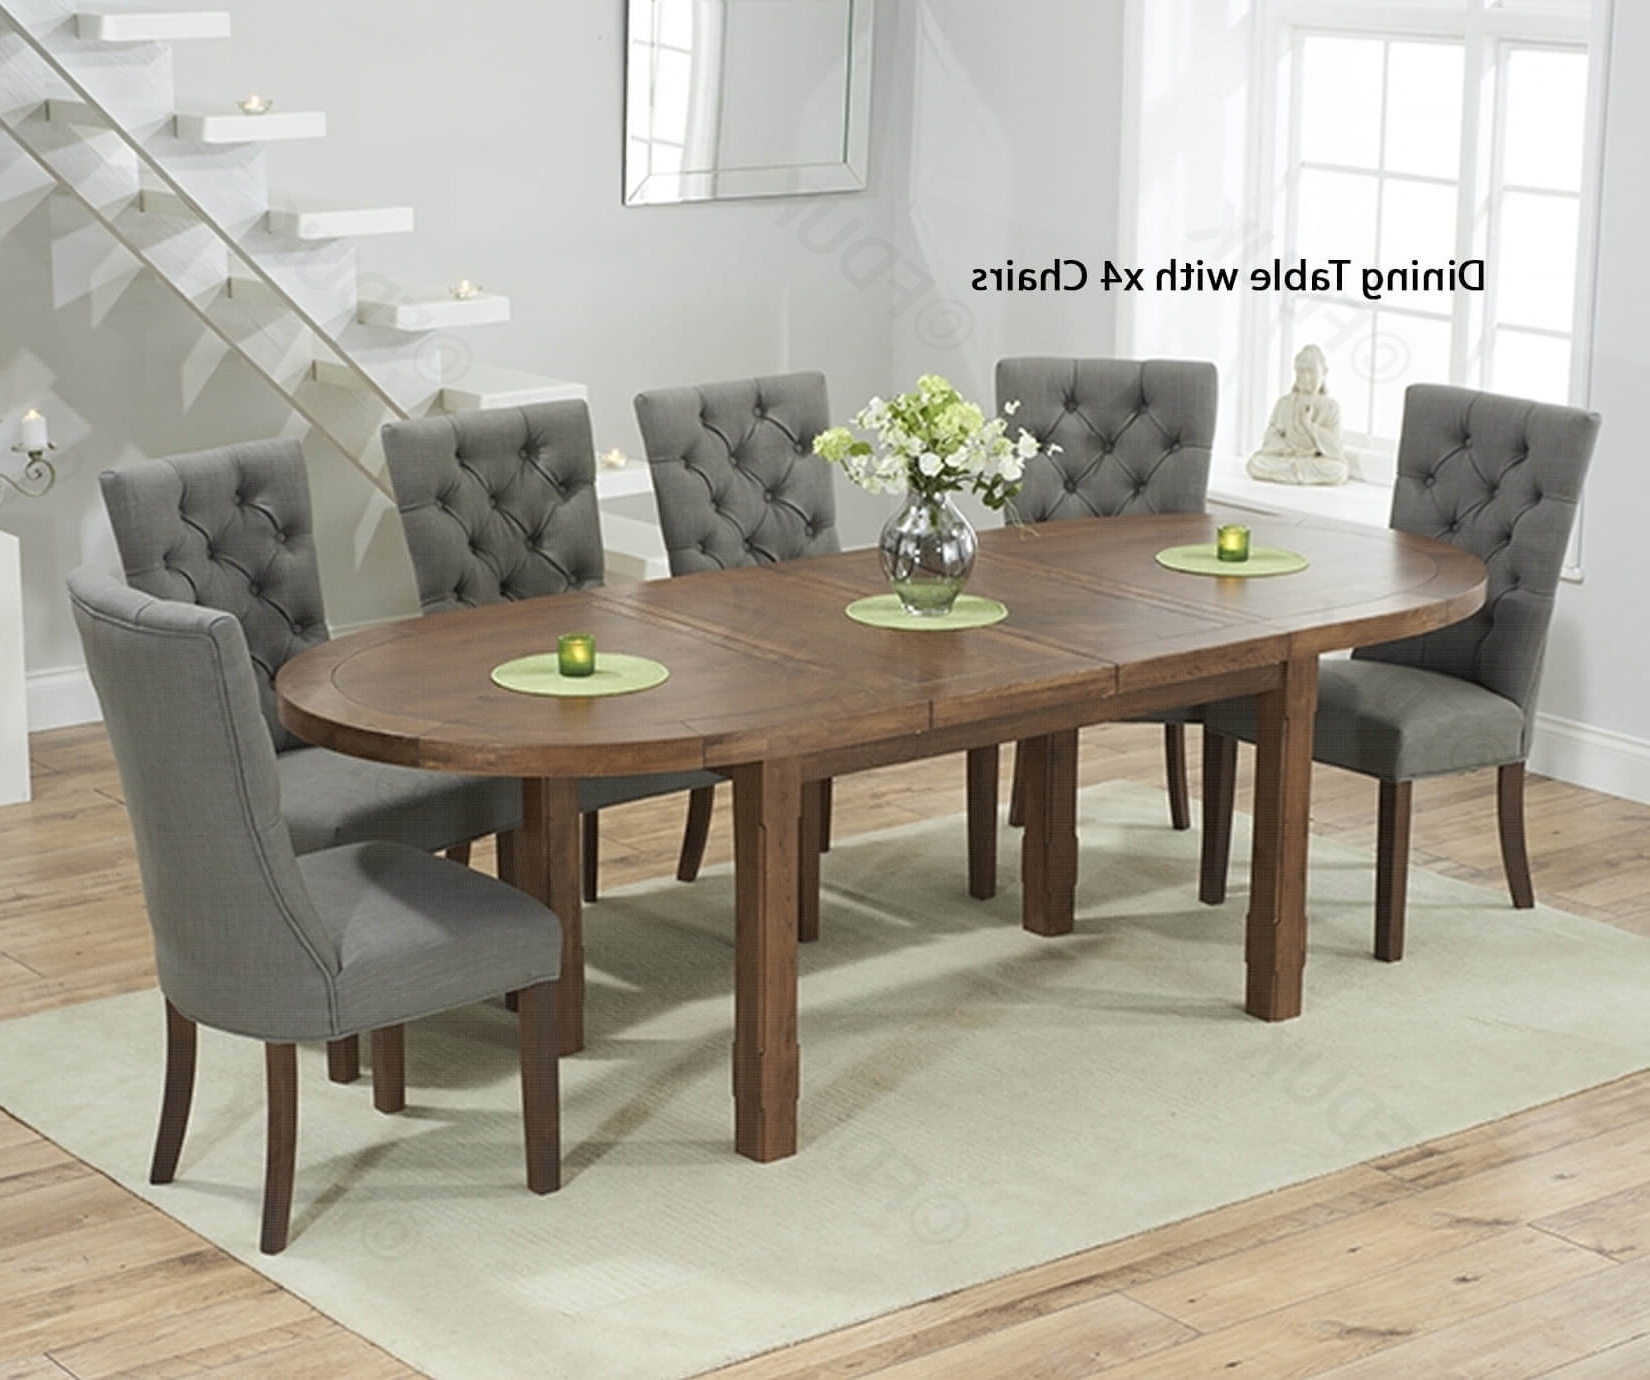 2018 Mark Harris Cheyenne Solid Dark Oak Dining Set – Oval Extending With Intended For Oval Oak Dining Tables And Chairs (Gallery 14 of 25)